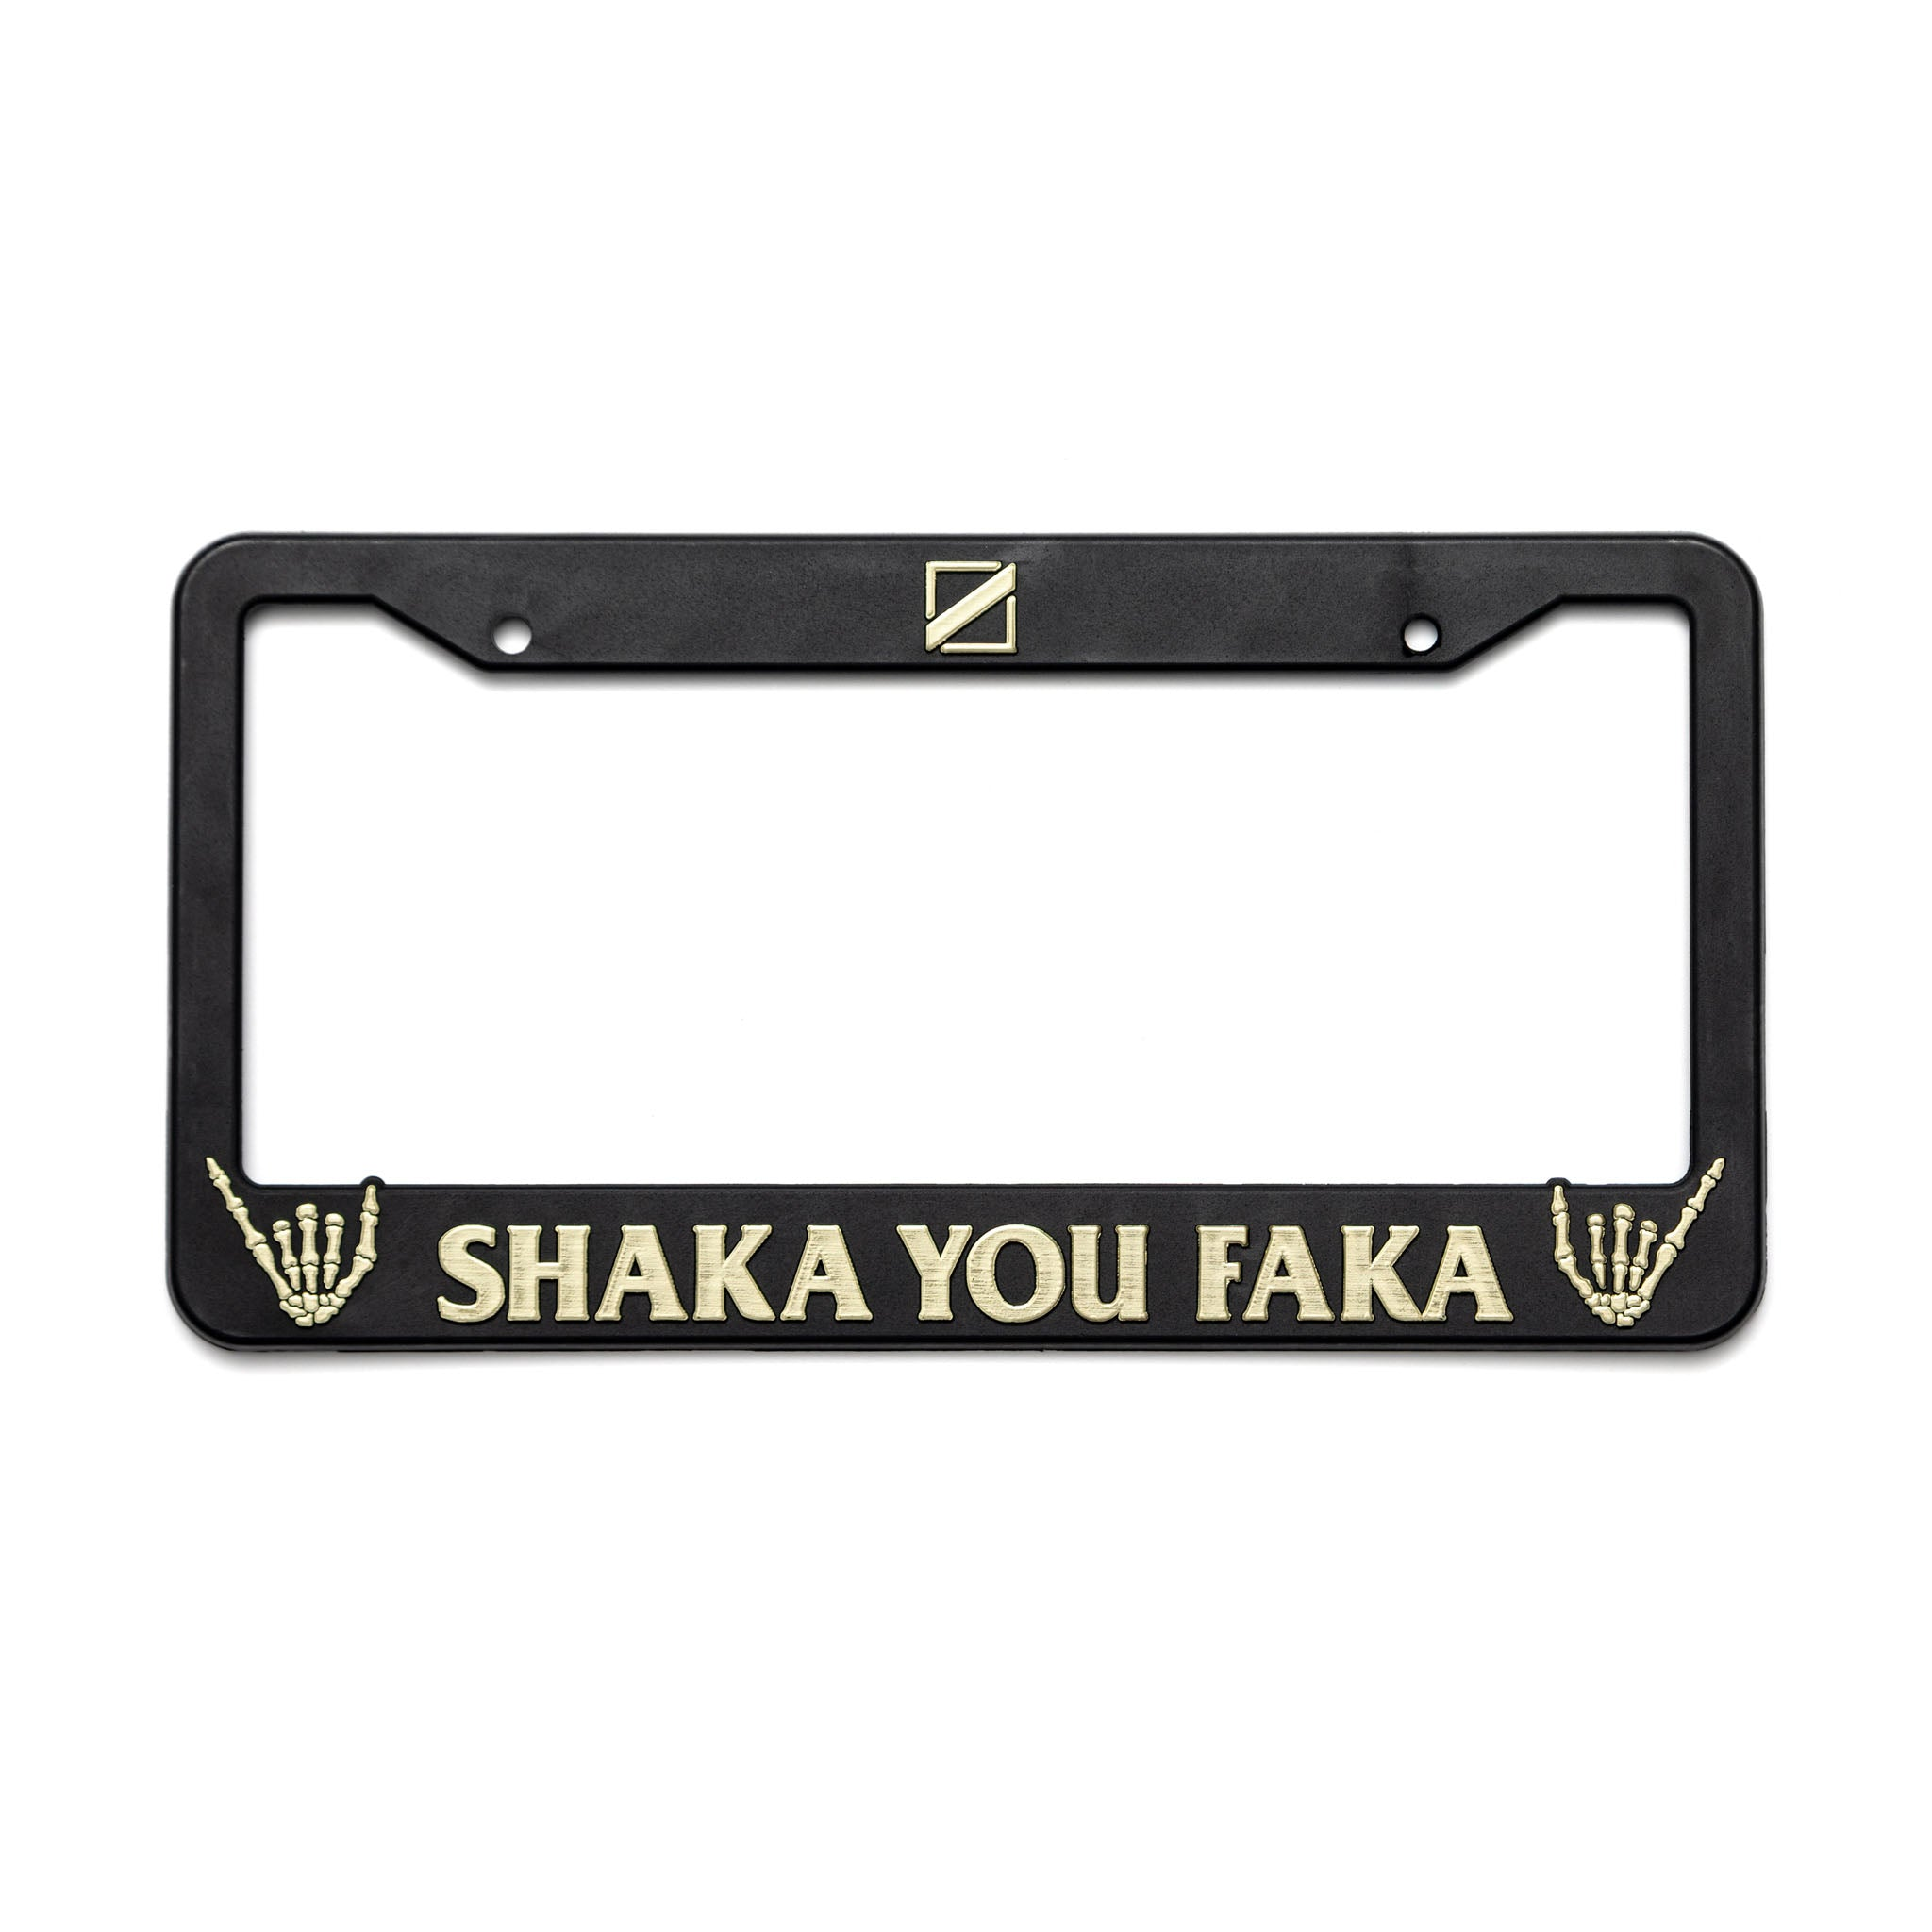 MF - SHAKA YOU FAKA LICENSE PLATE FRAME